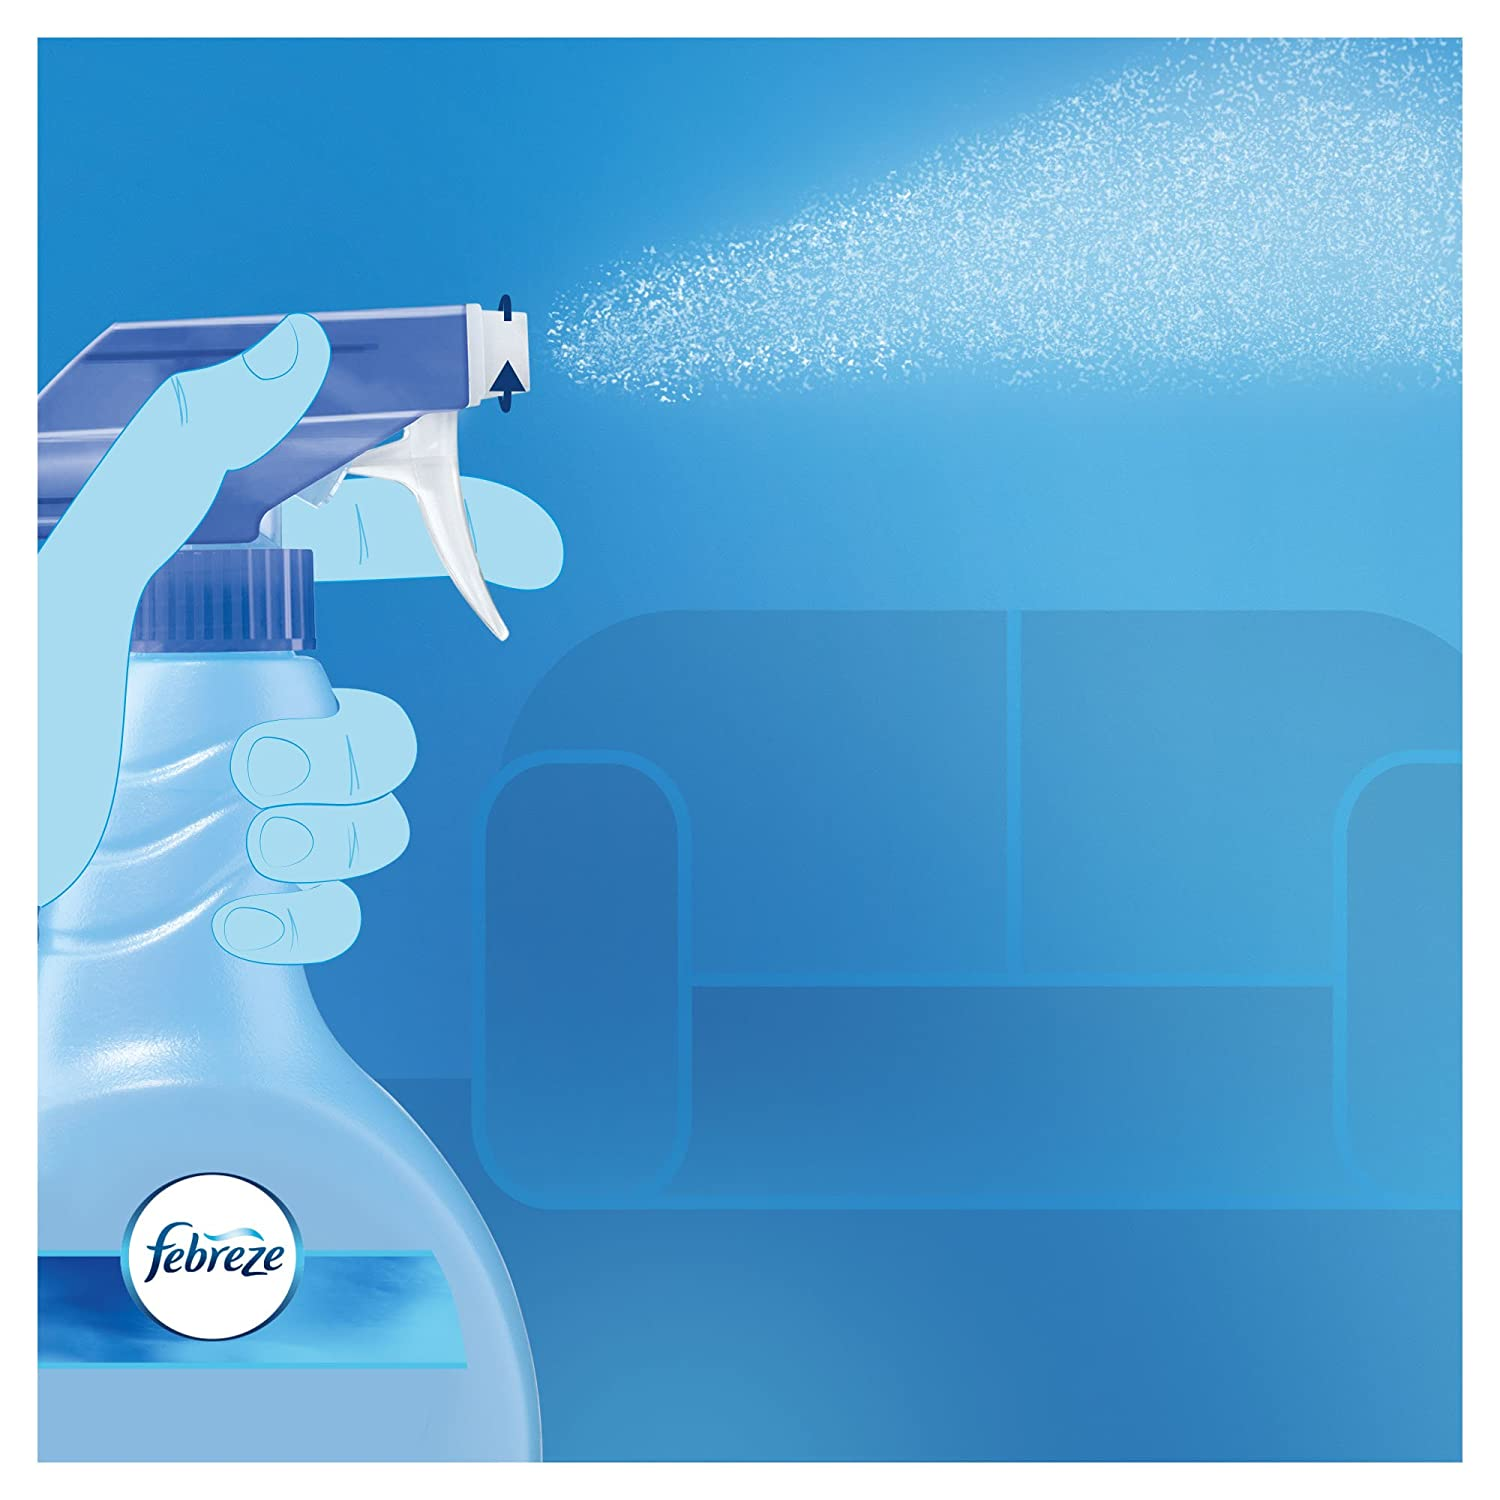 Febreze Deodorante per Tessuti Spray Classic 500 ml: Amazon.es: Amazon Pantry